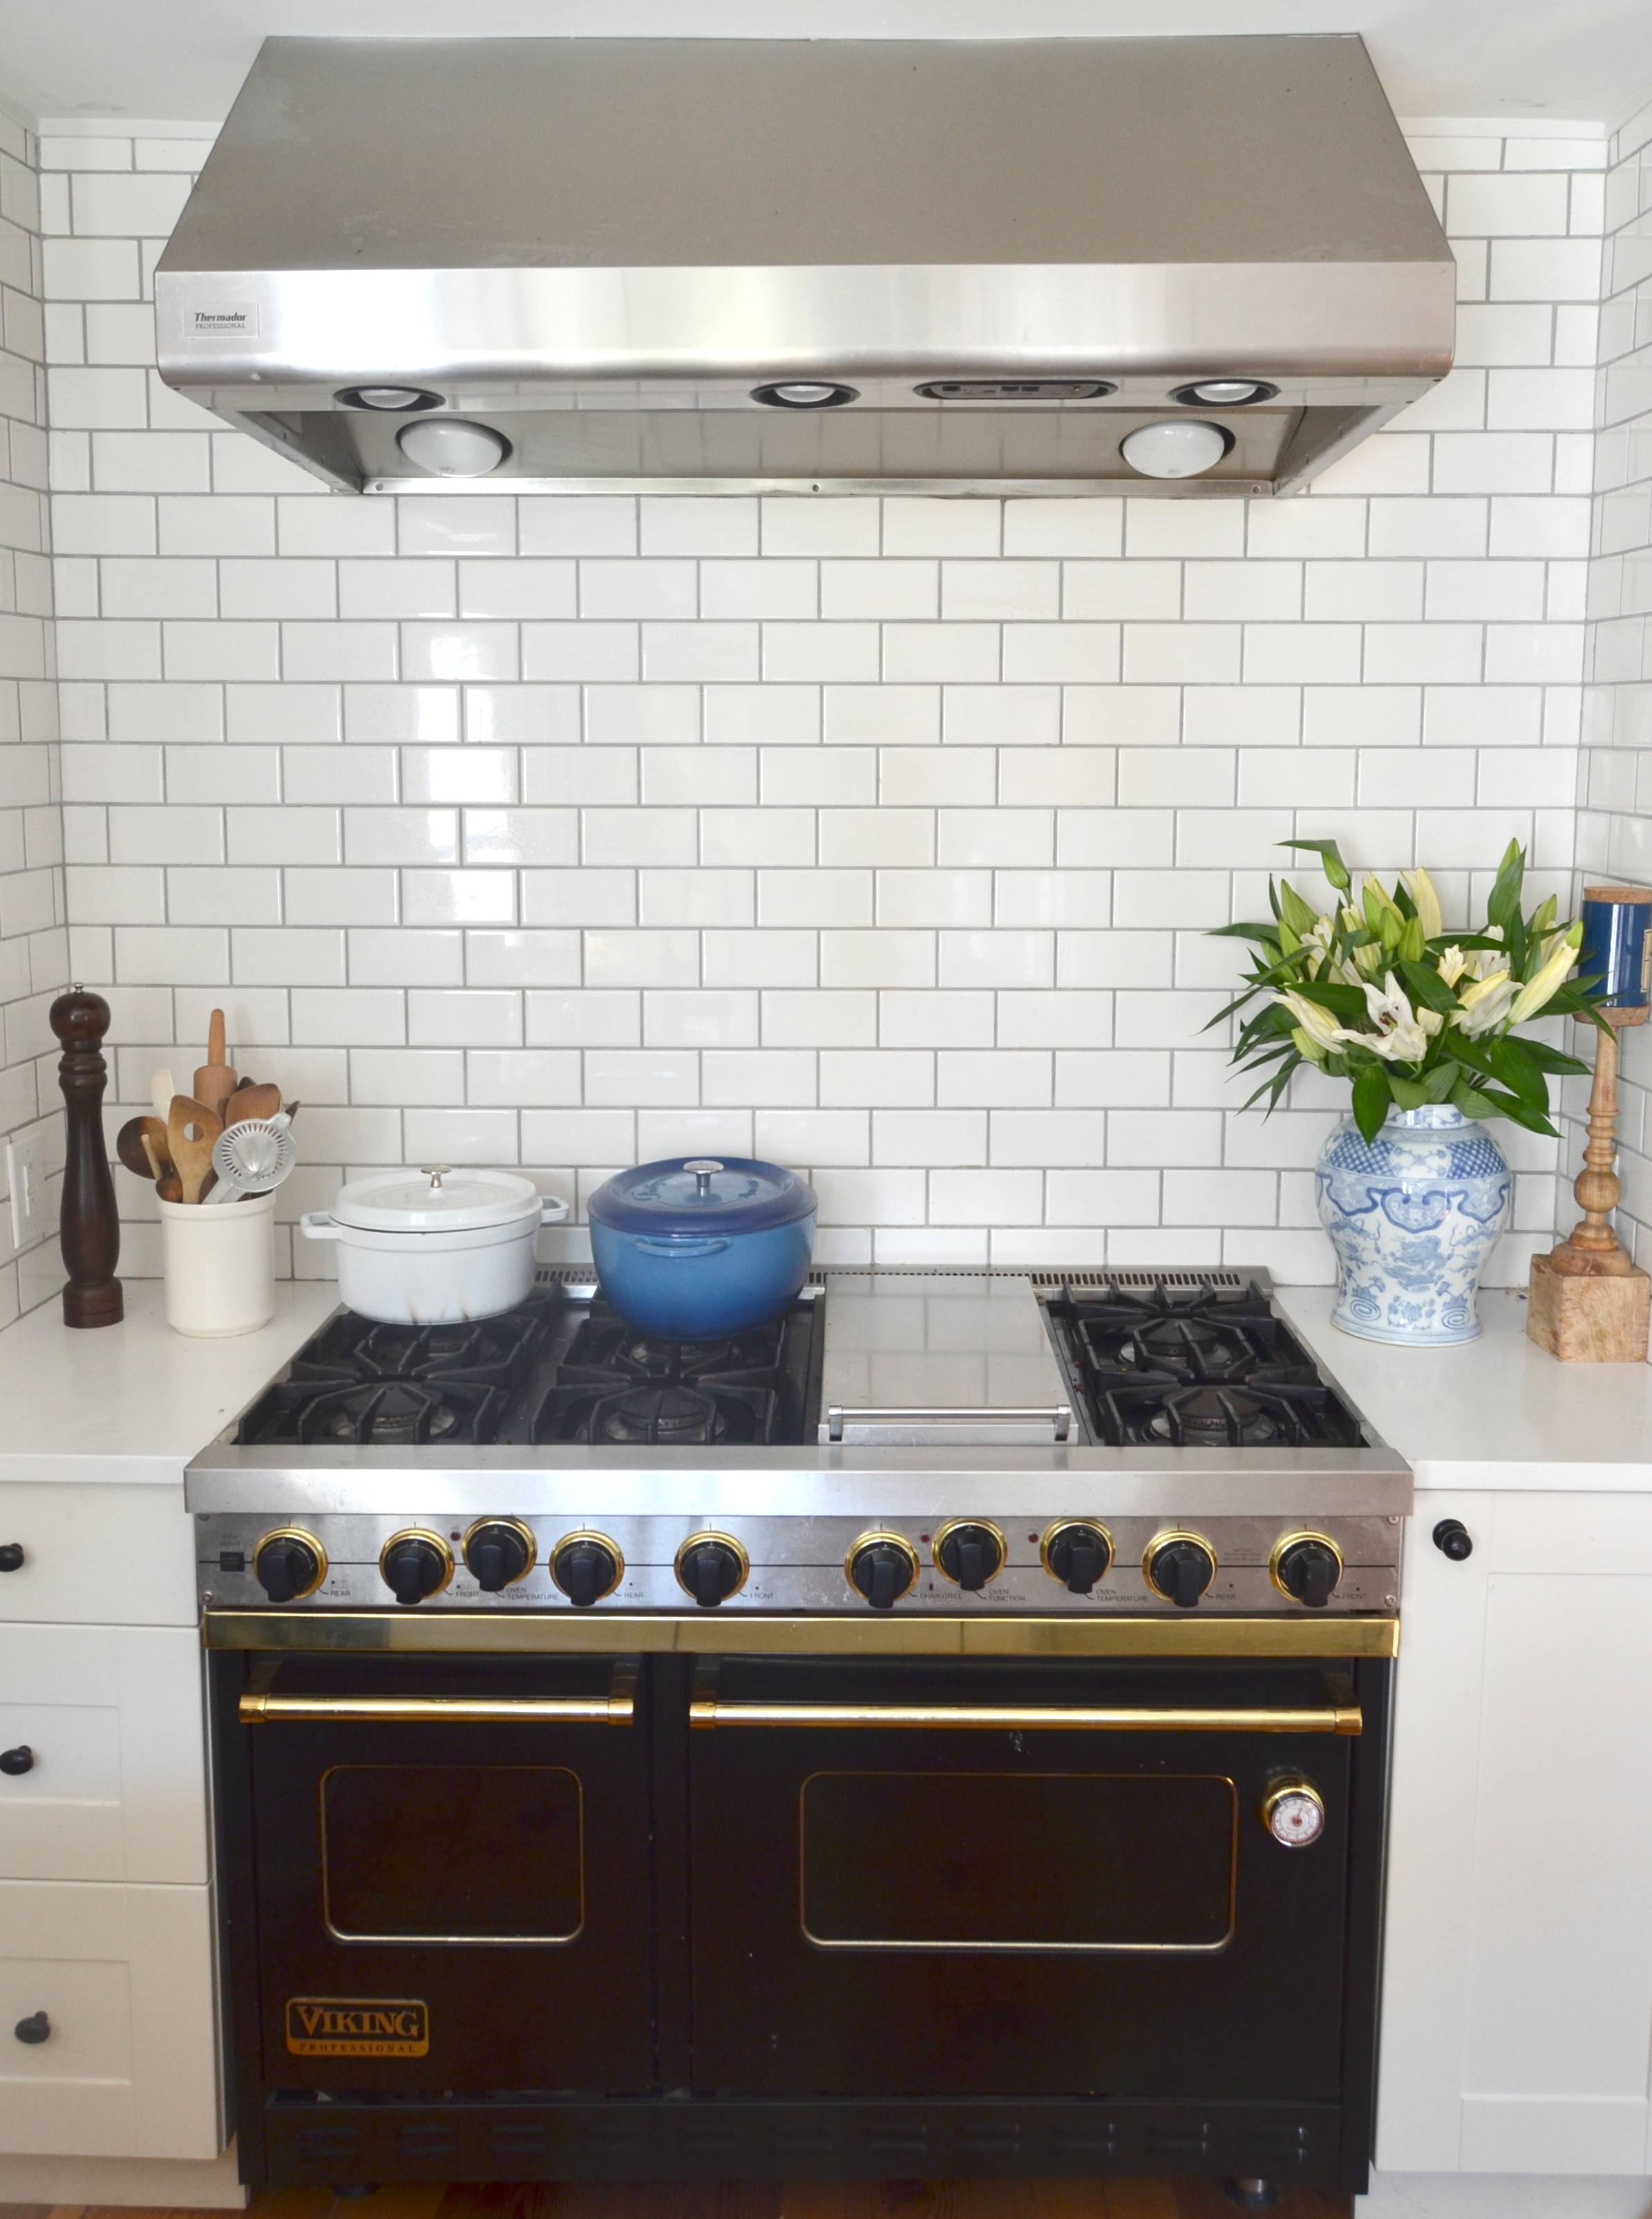 Kitchen Ranges And Ovens ~ Friday update the viking range